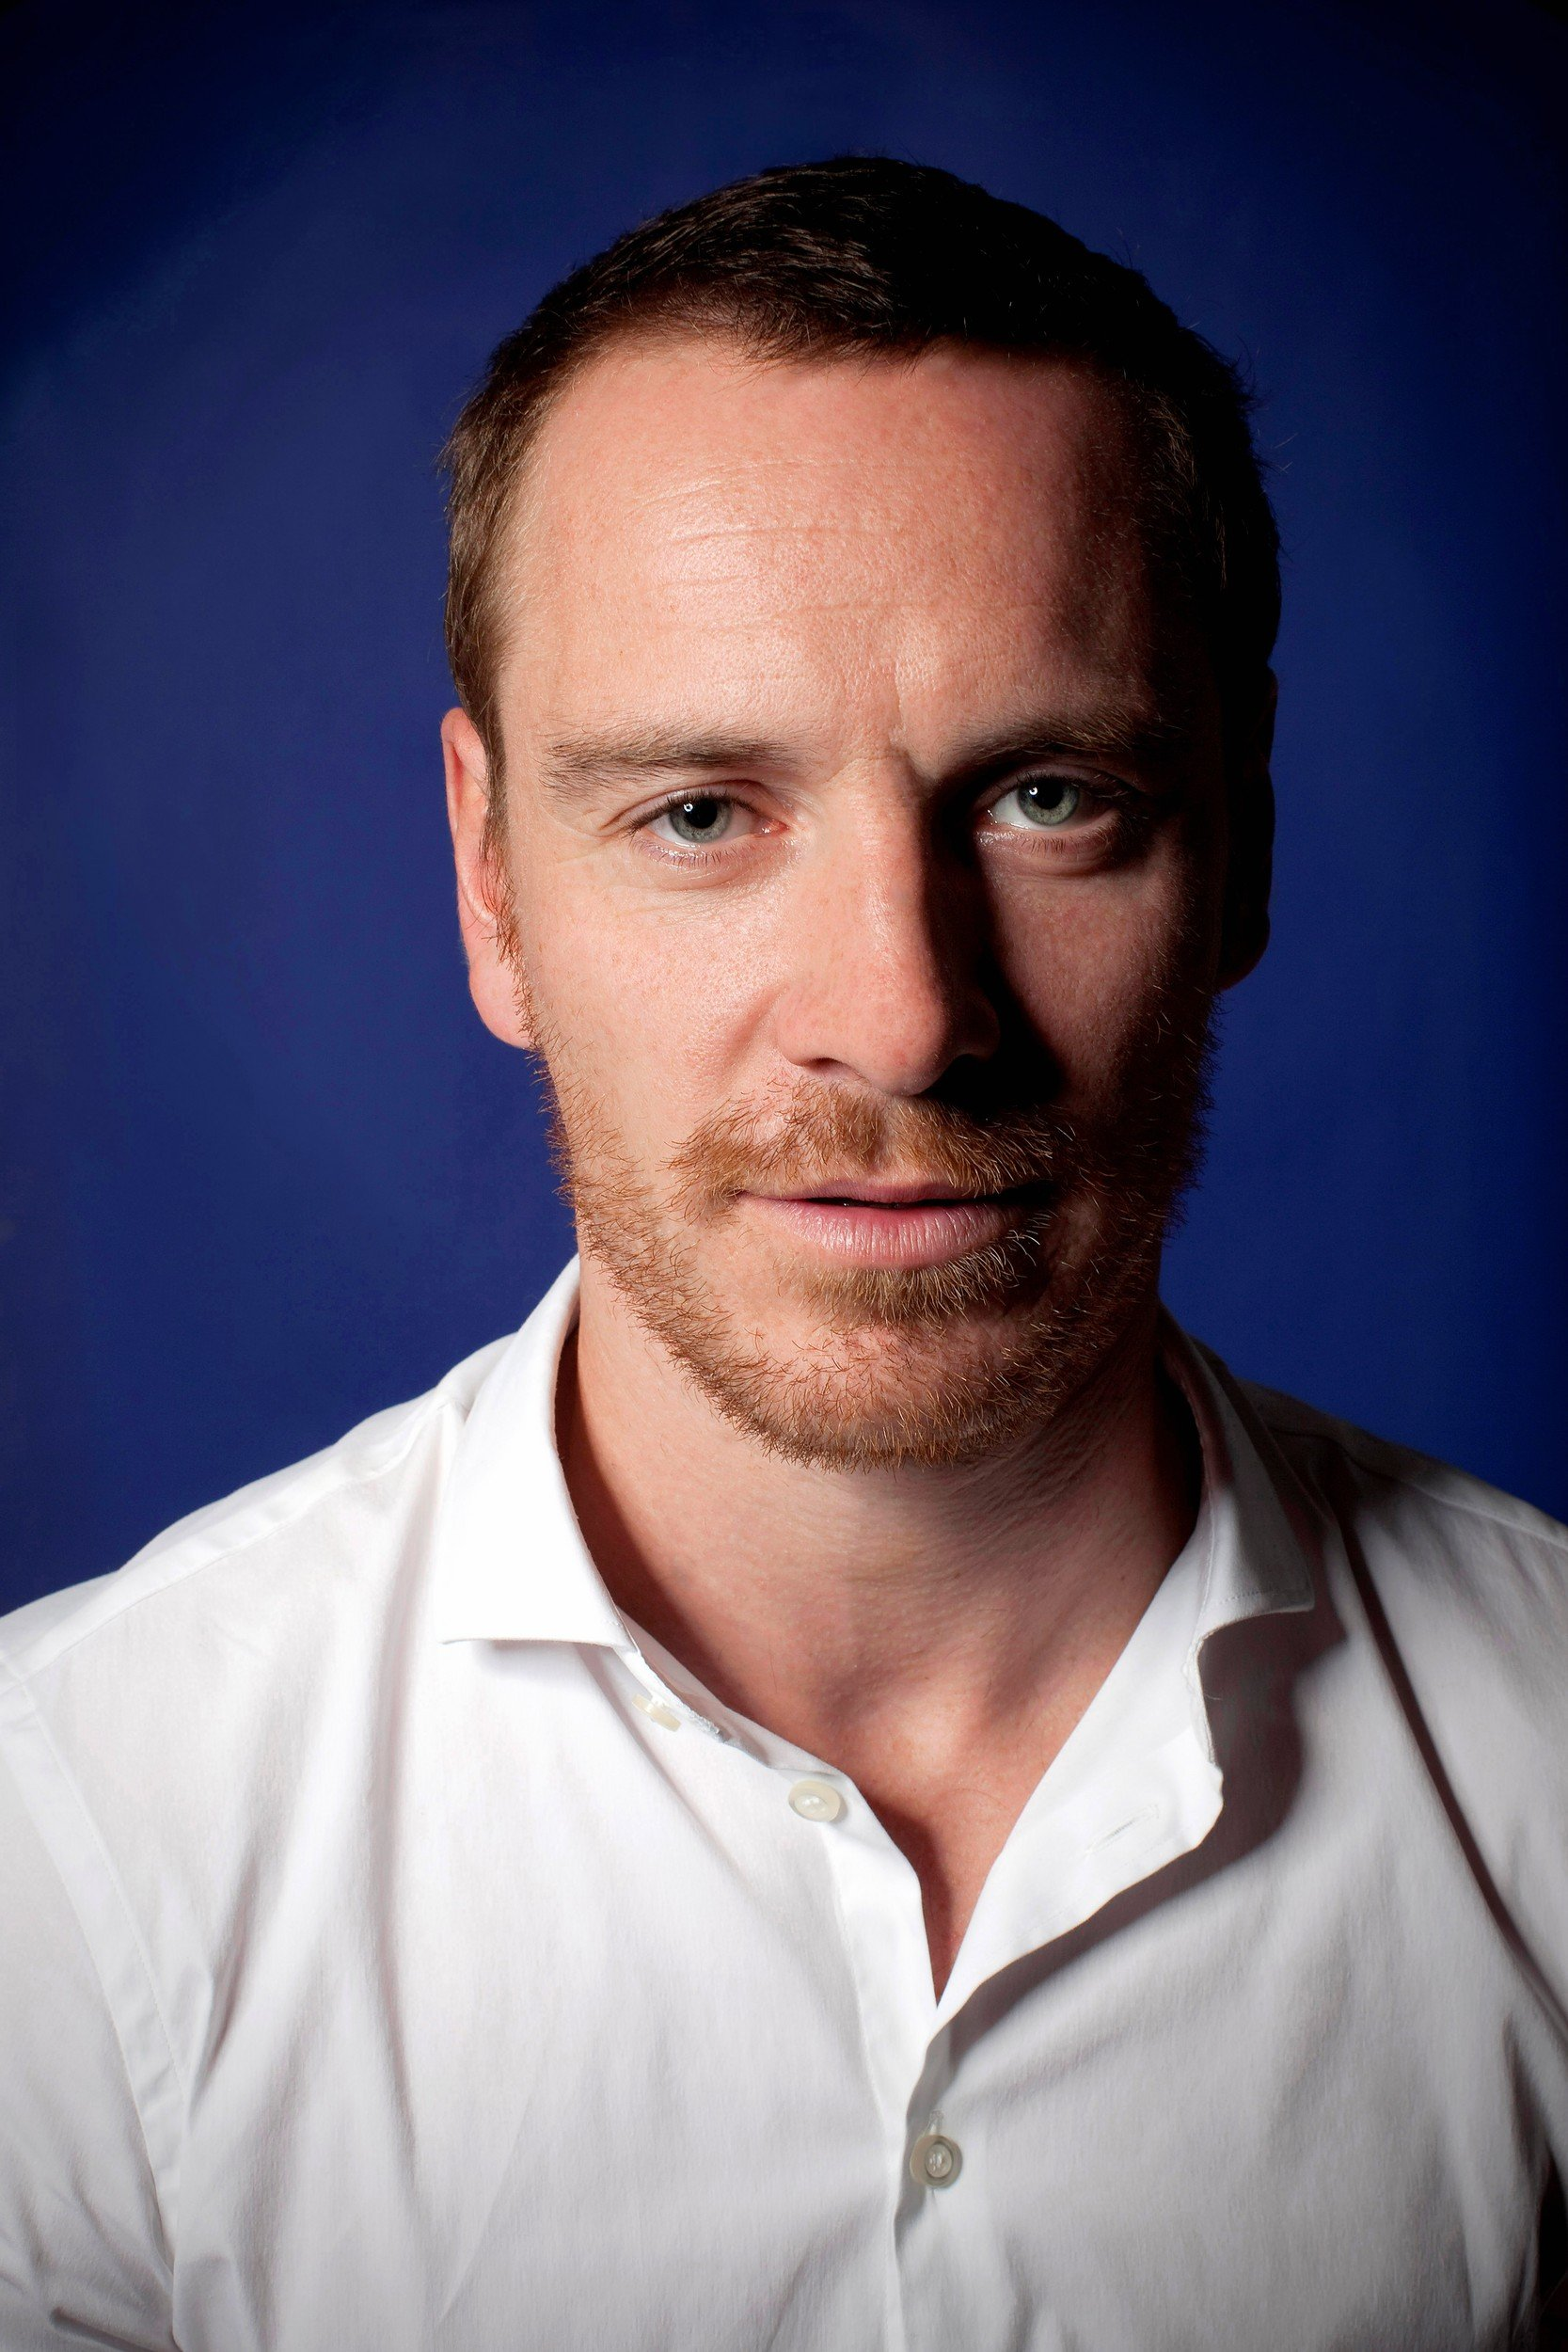 Best Hd Wallpaper For Android Mobile Michael Fassbender 855439 Wallpapers High Quality